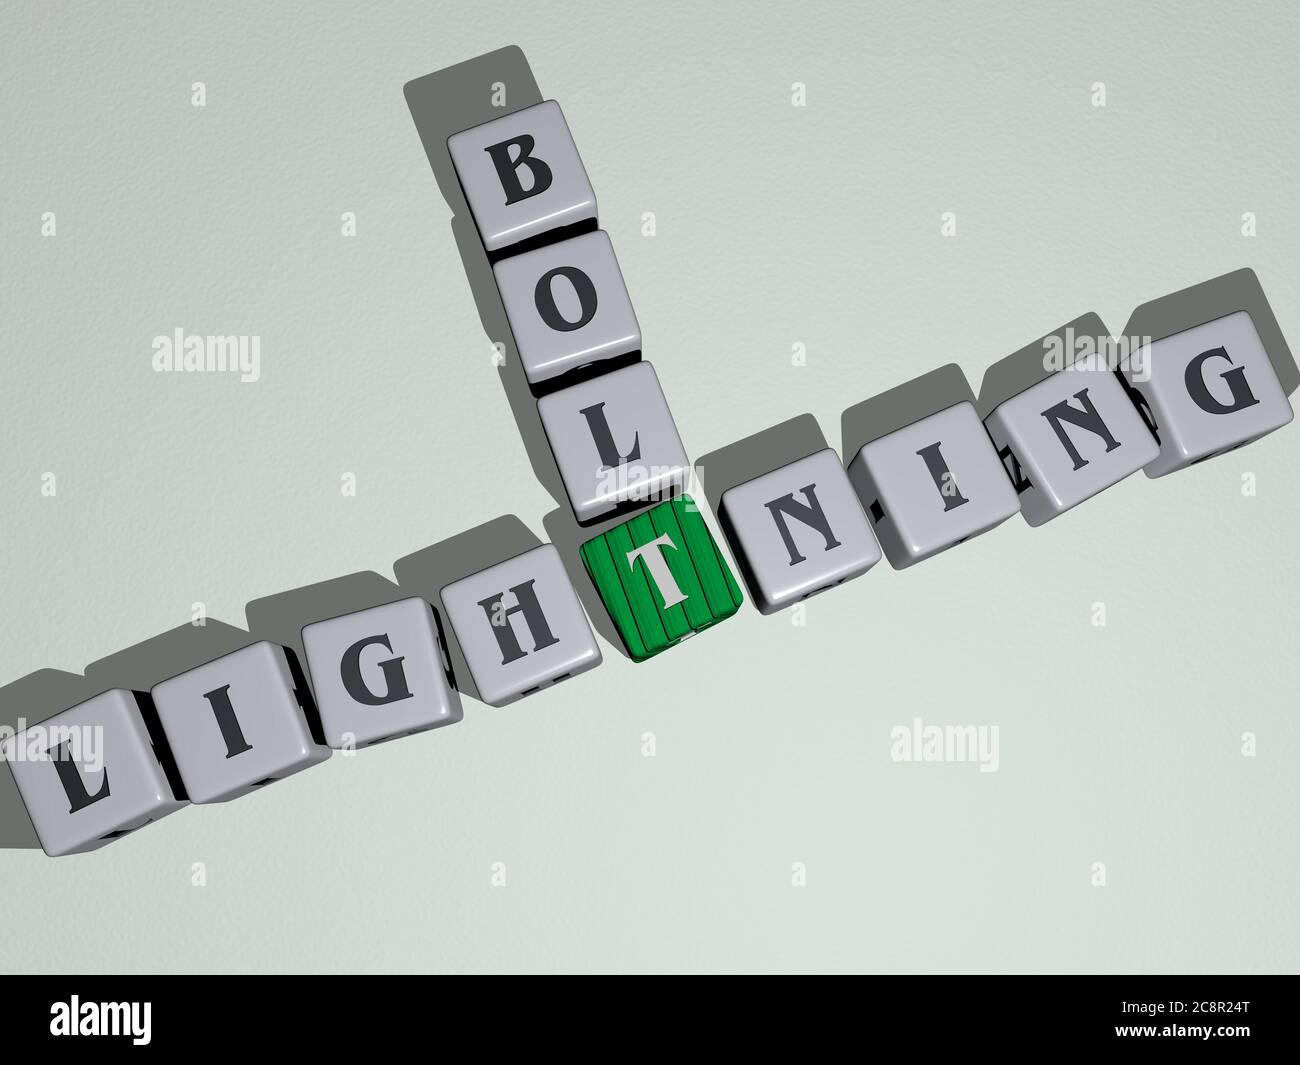 Crosswords Of Lightning Bolt Arranged By Cubic Letters On A Mirror Floor Concept Meaning And Presentation Illustration And Background 3d Illustration Stock Photo Alamy